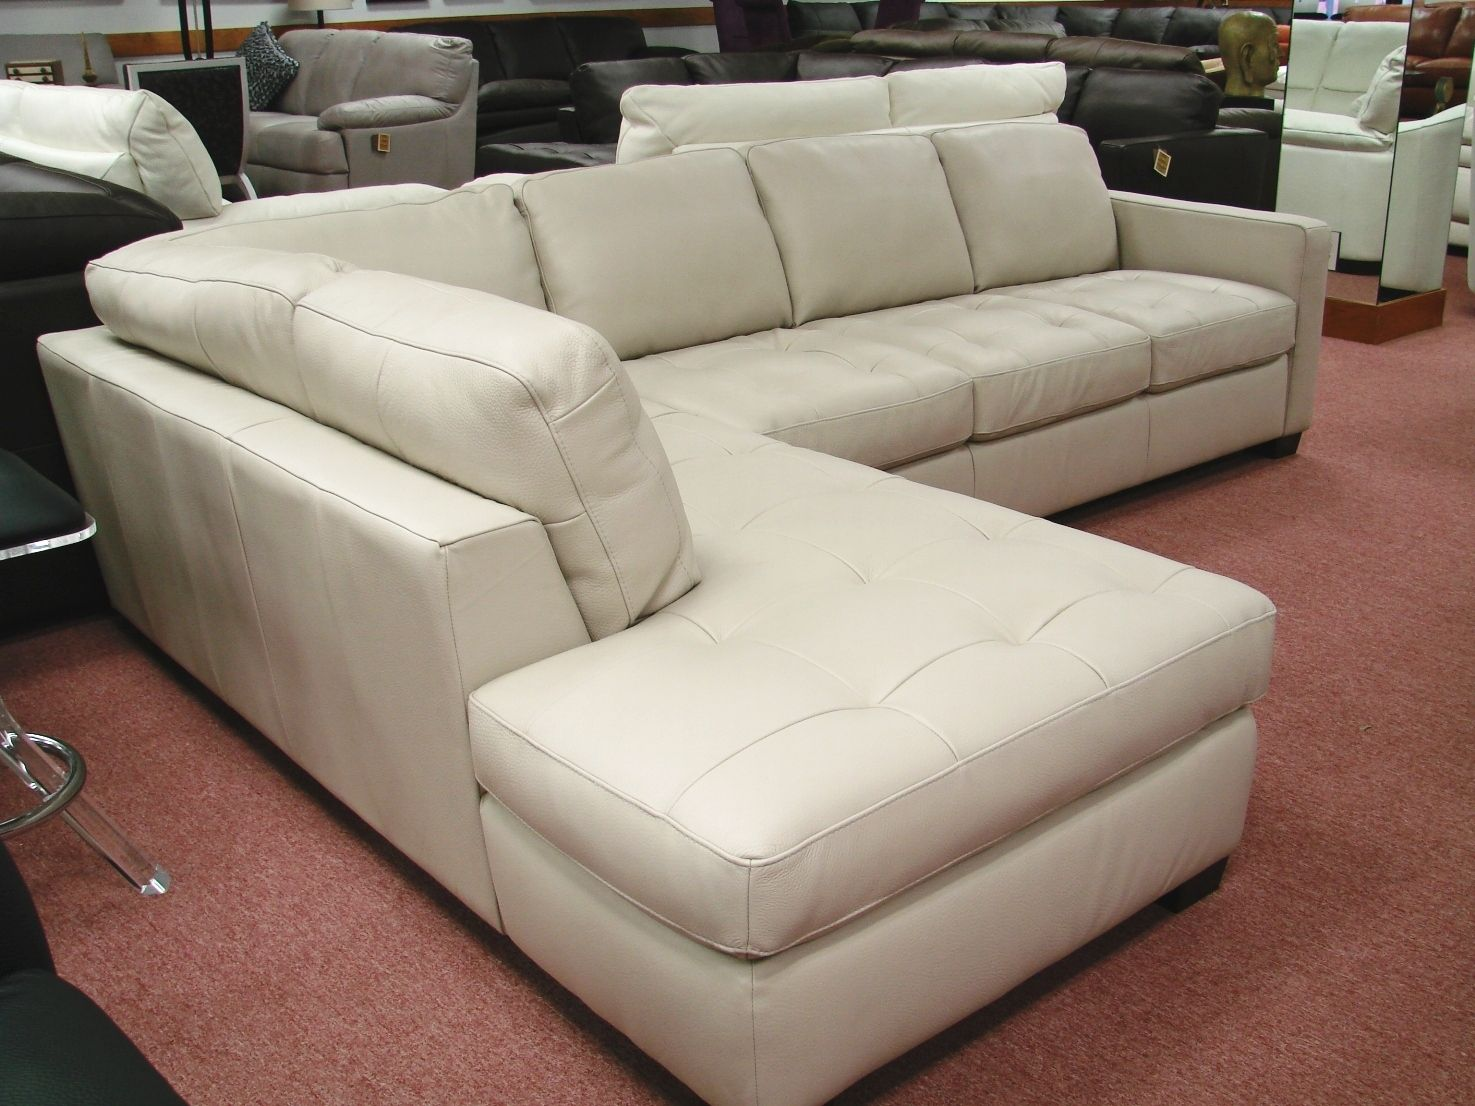 Traditional Style natuzzi sectional sofa Moooi Brand | Home ...